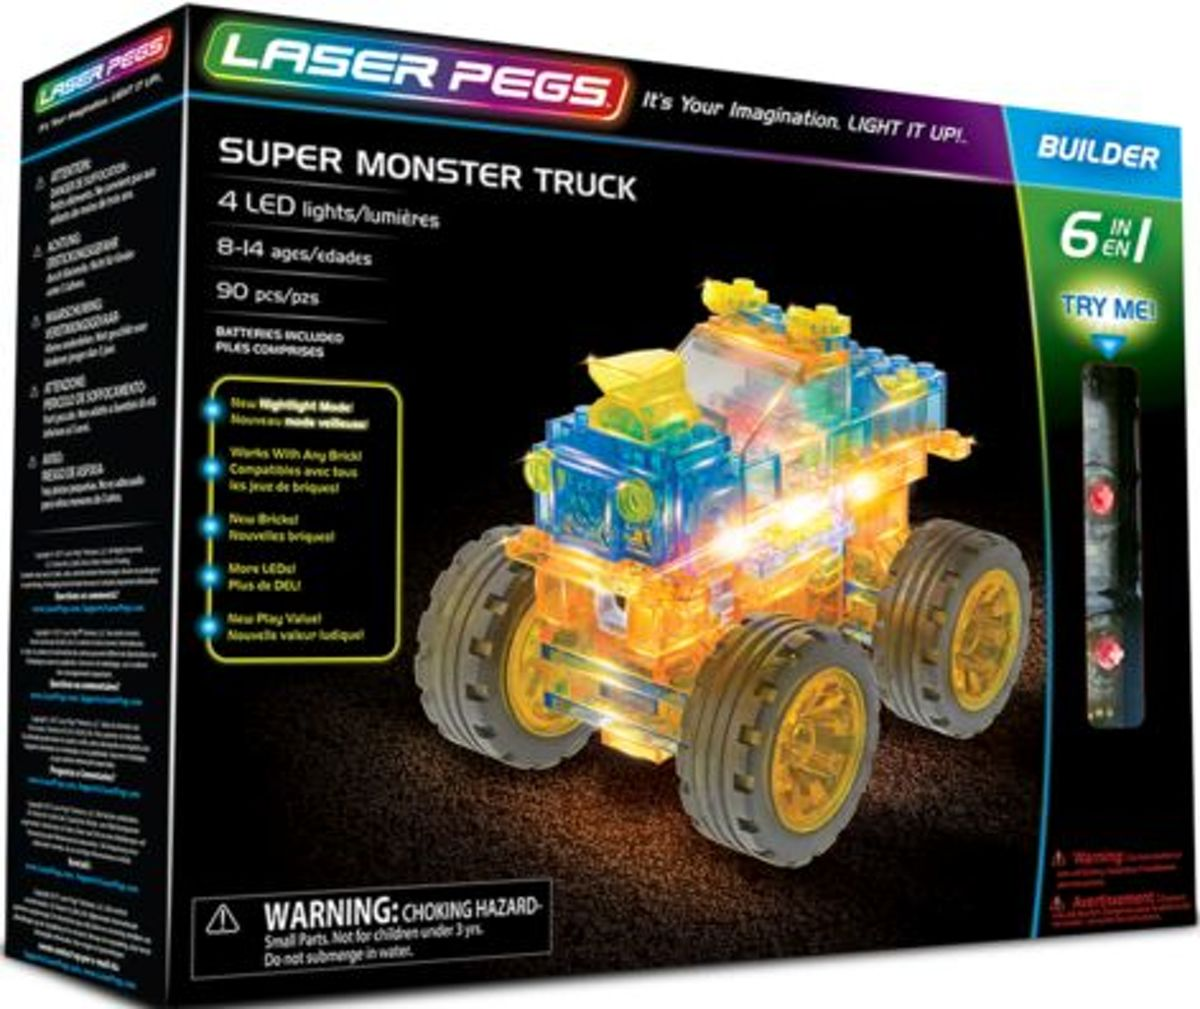 Super monster truck Laser Pegs 6 in 1